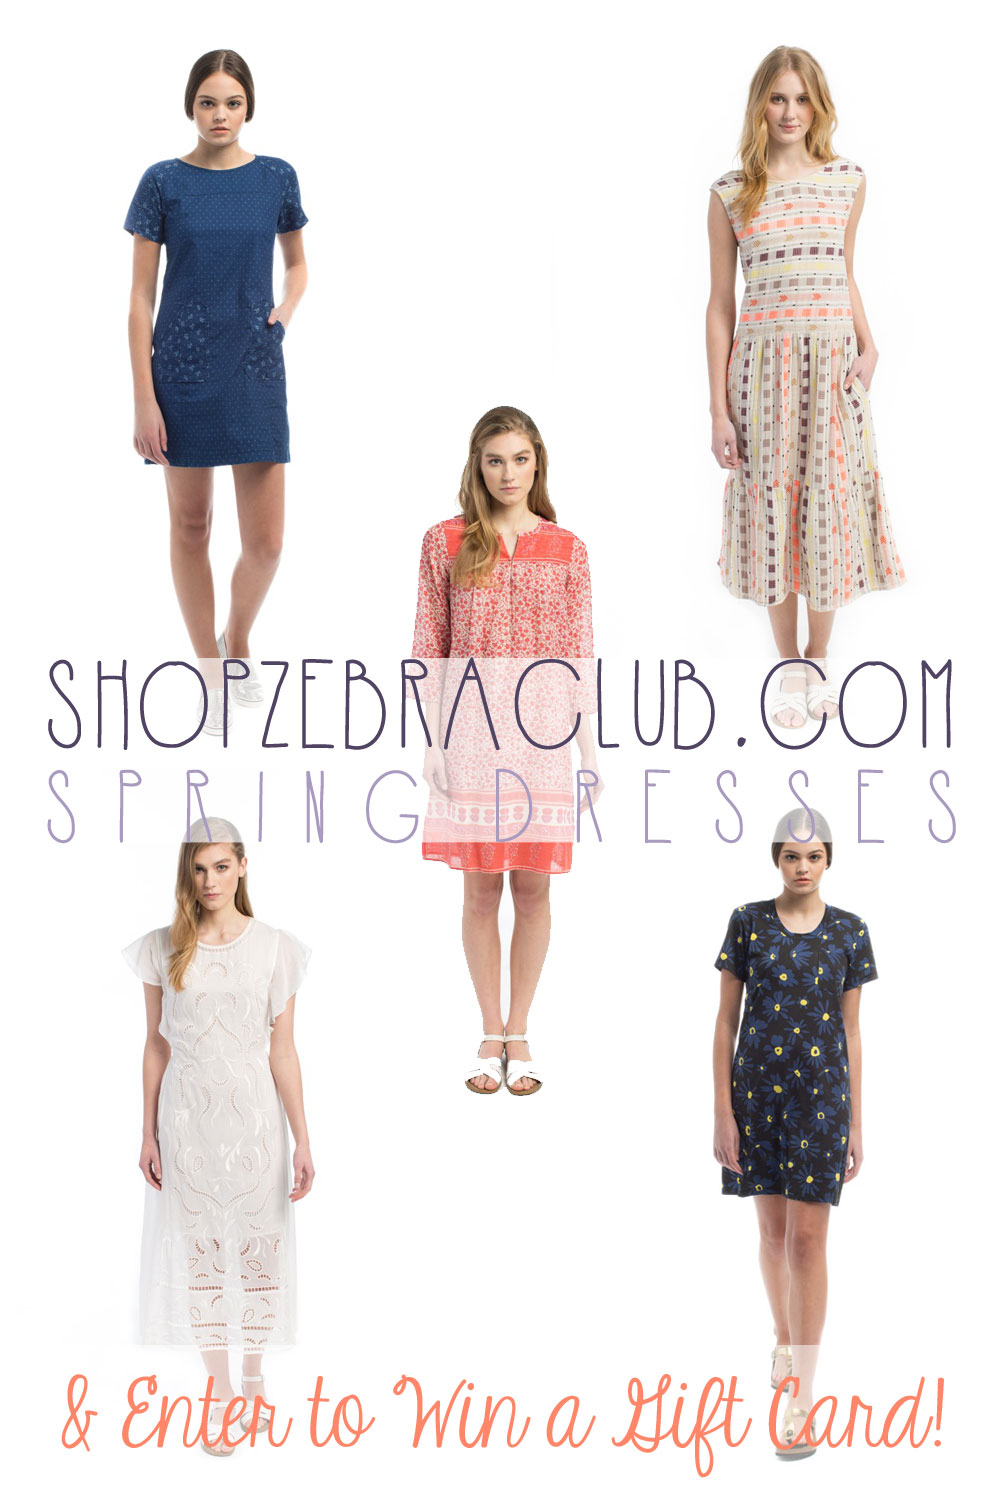 ShopZebraClub.com Spring Dresses  & Giveaway: Enter to win $50 to spend on some cute spring outfits! / hellorigby seattle fashion blog